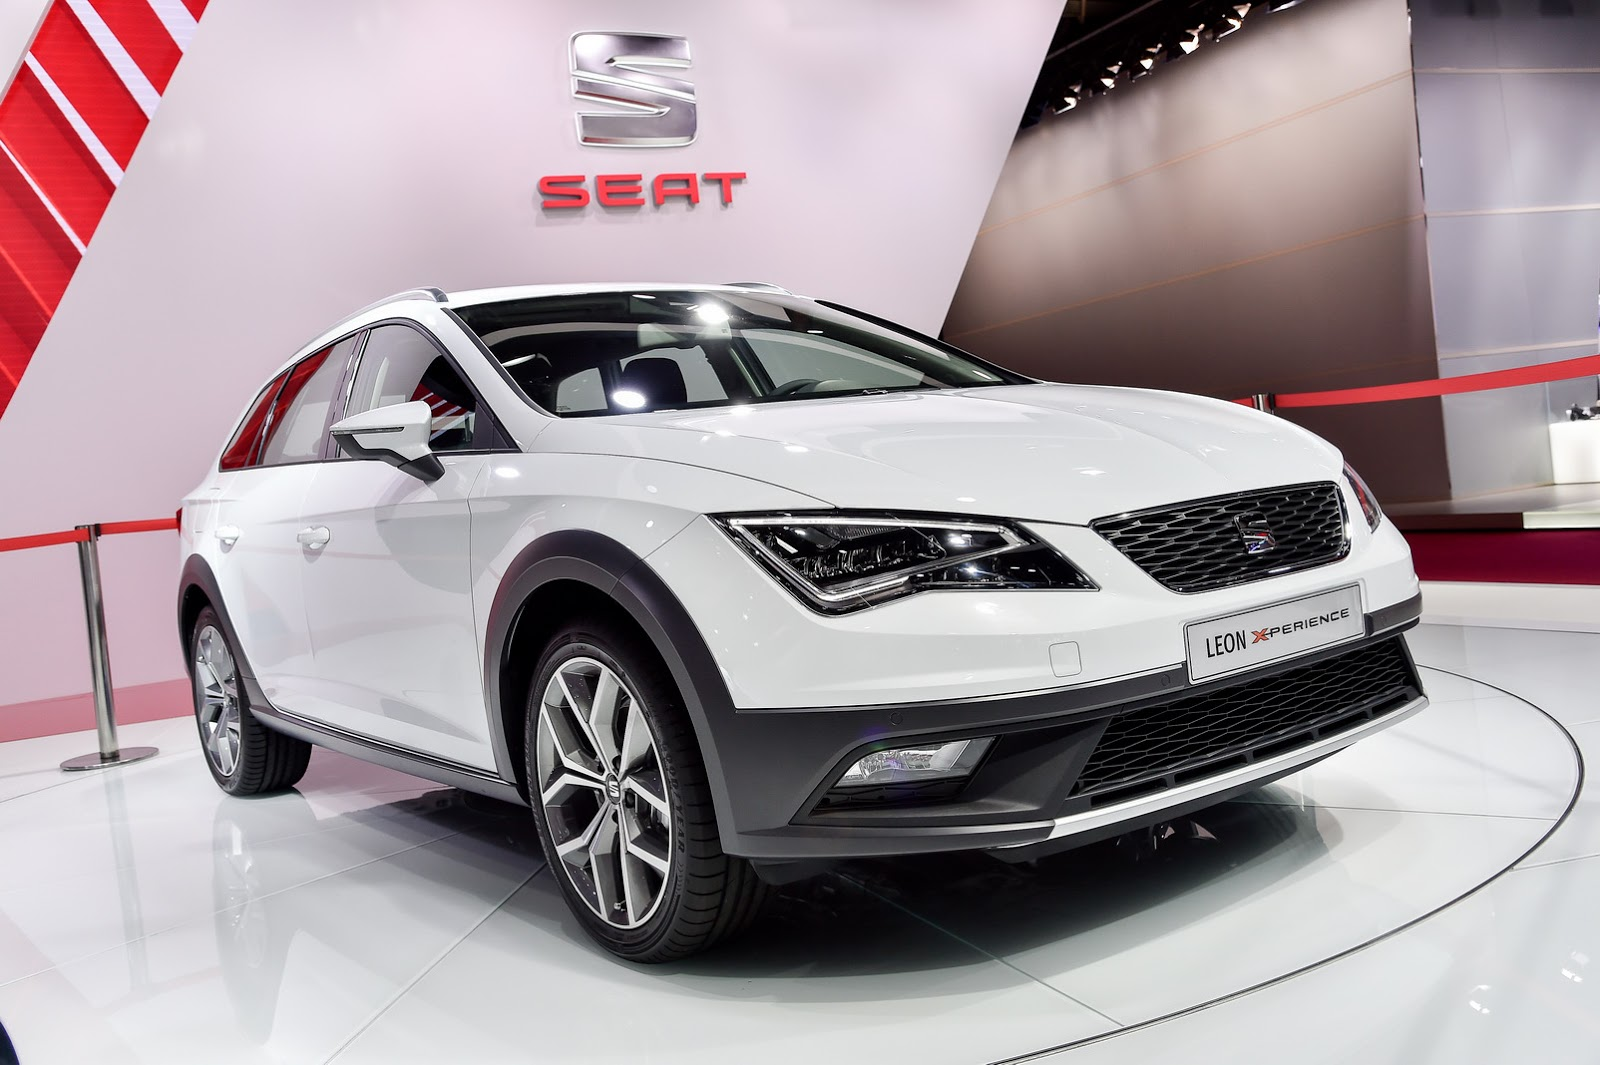 new leon x perience is seat 39 s temporary answer to its suv problem. Black Bedroom Furniture Sets. Home Design Ideas